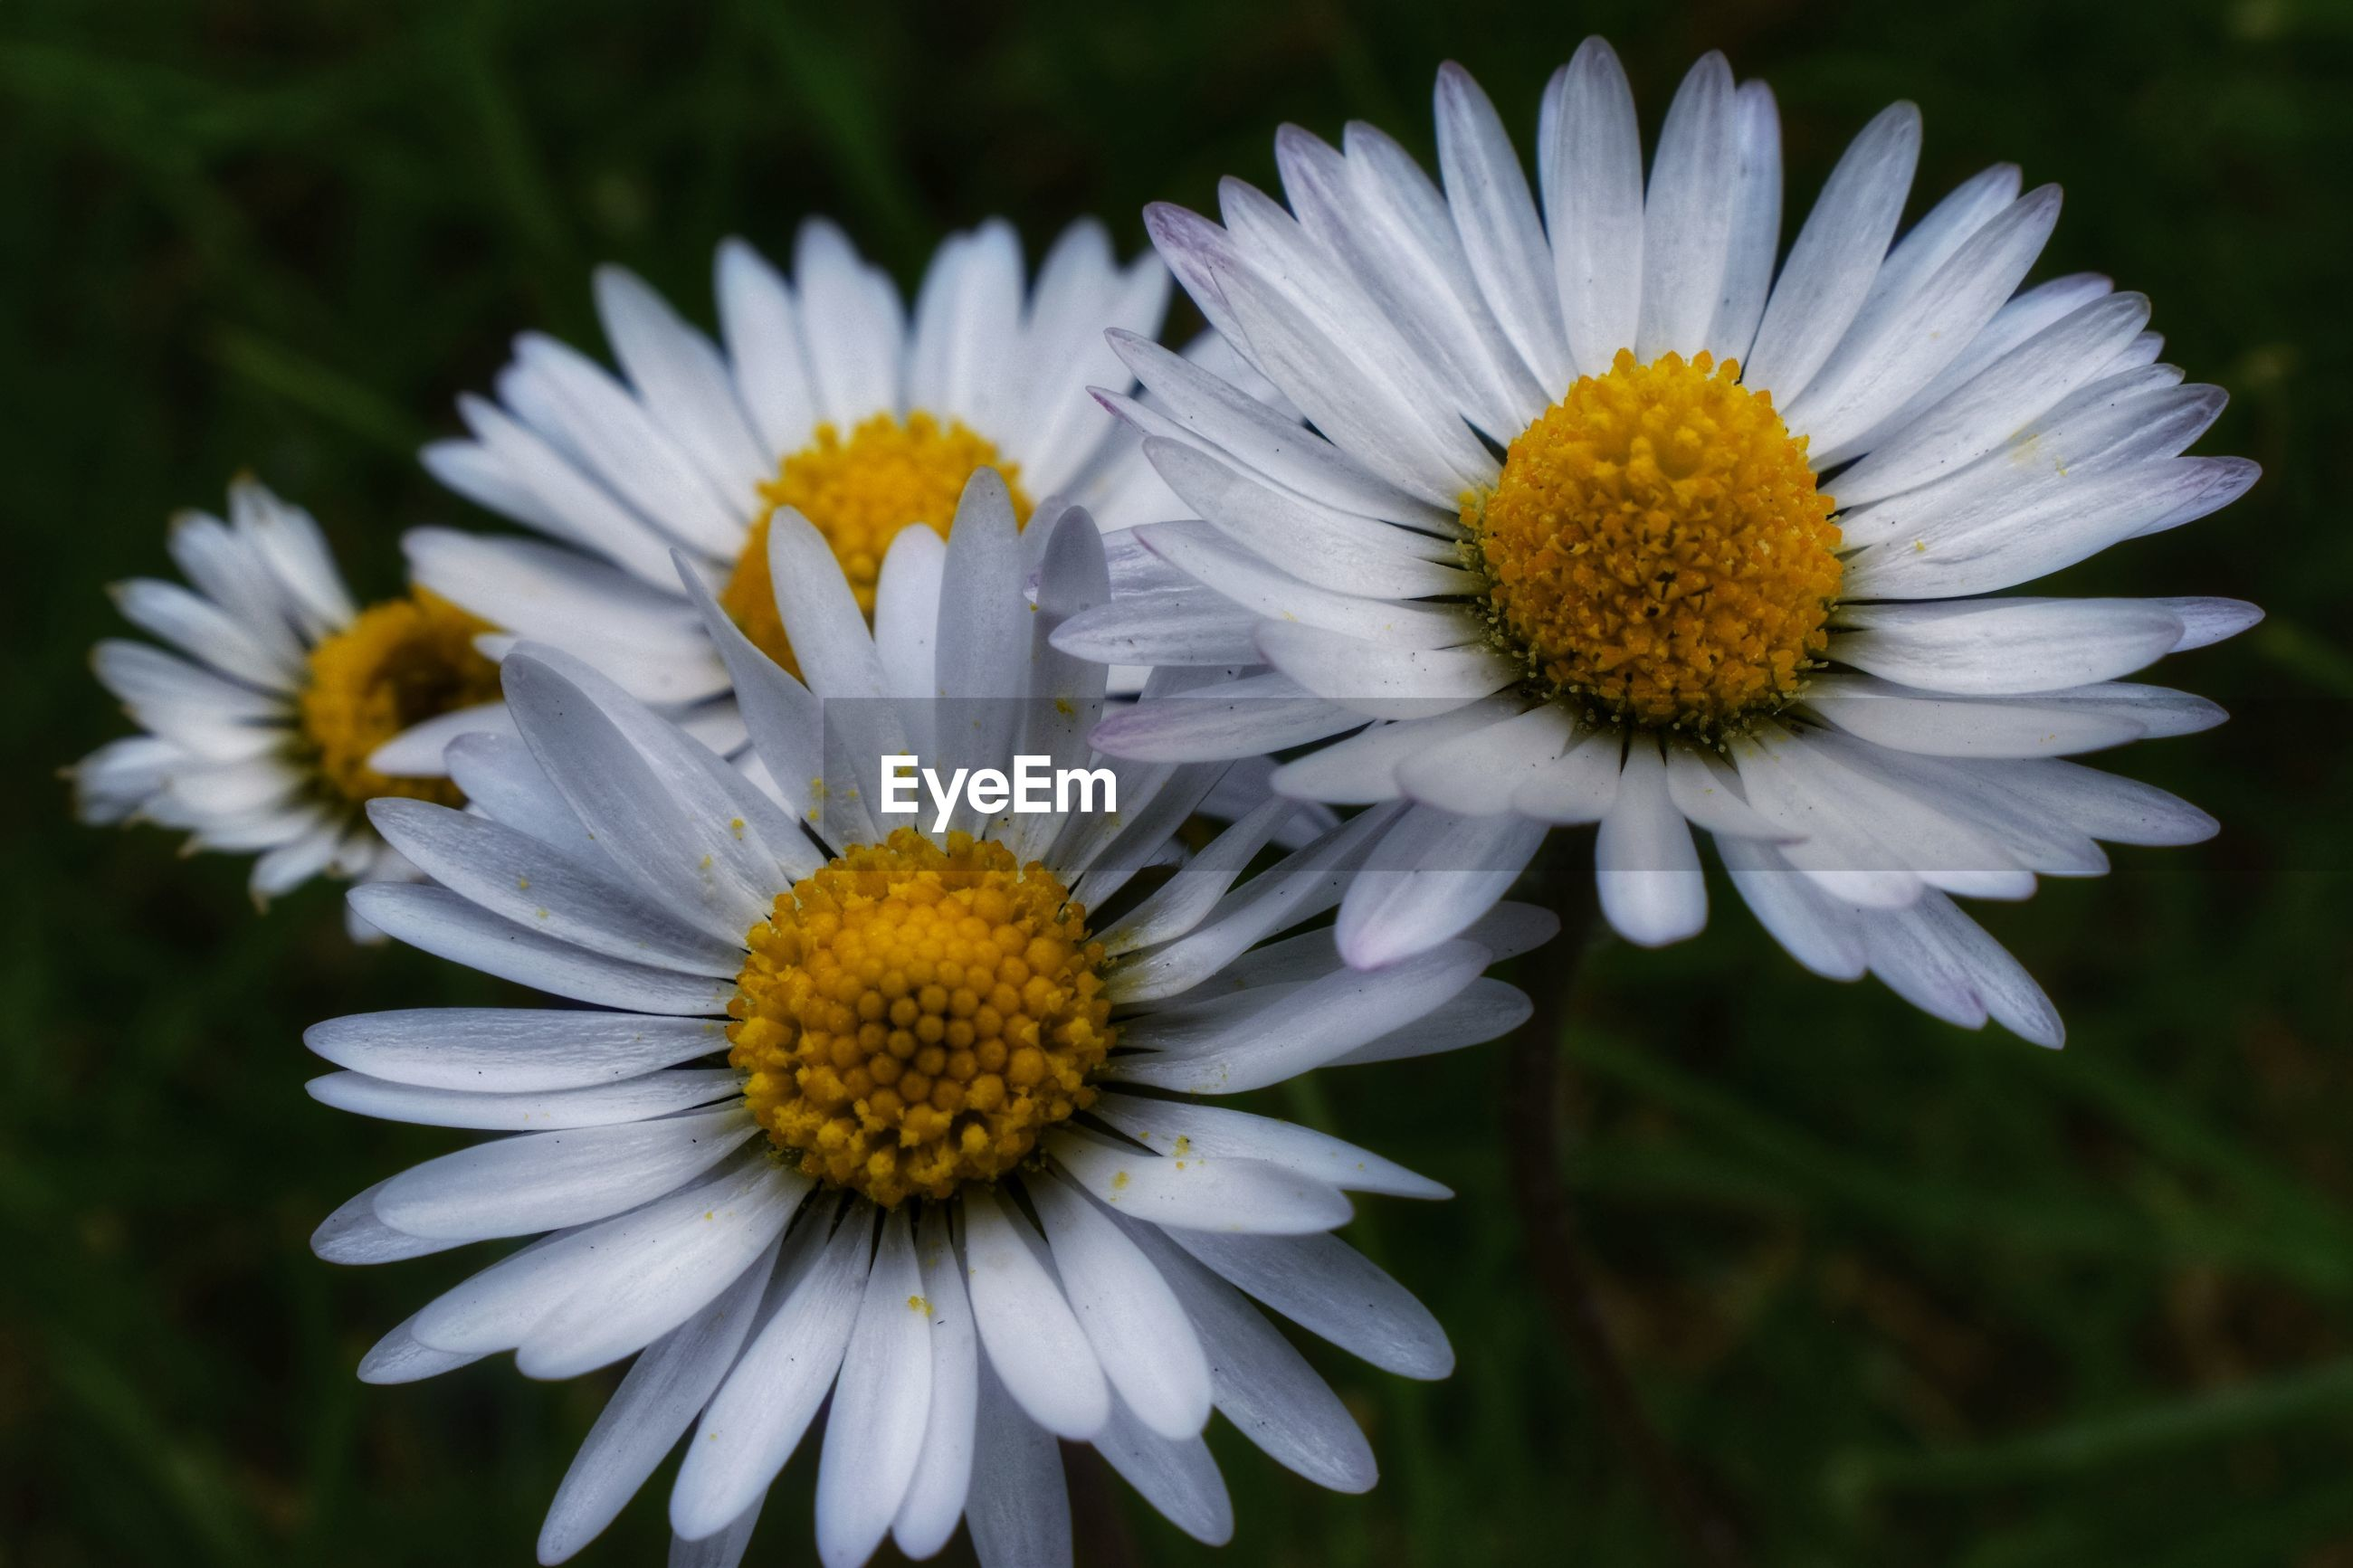 CLOSE-UP OF WHITE DAISY AND YELLOW FLOWERING PLANTS